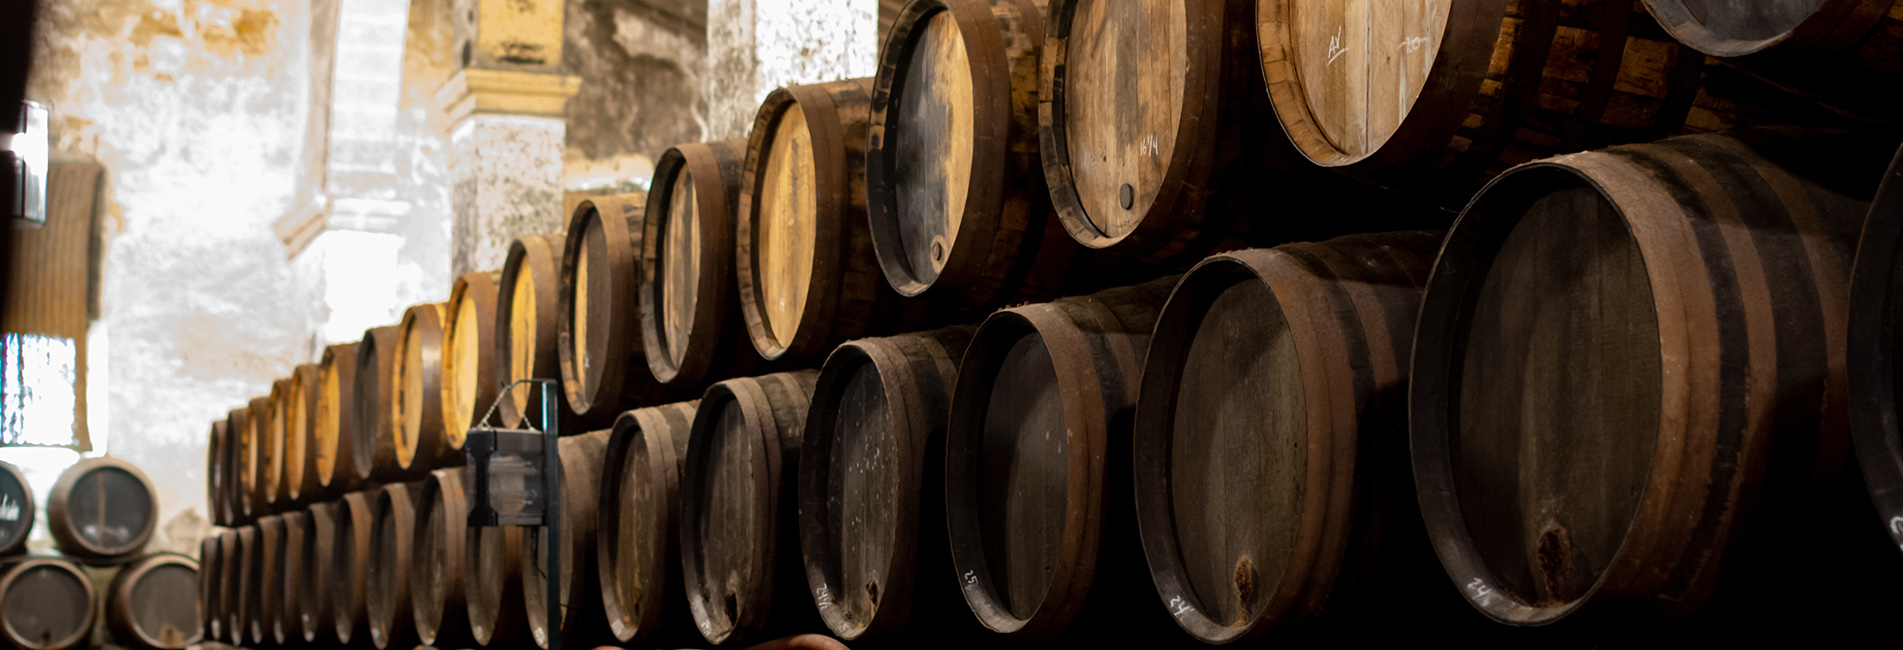 Production of fortified jerez, xeres, sherry wines in old dark oak barrels in sherry triangle, Jerez la Frontera, El Puerto Santa Maria and Sanlucar Barrameda Andalusia, Spain